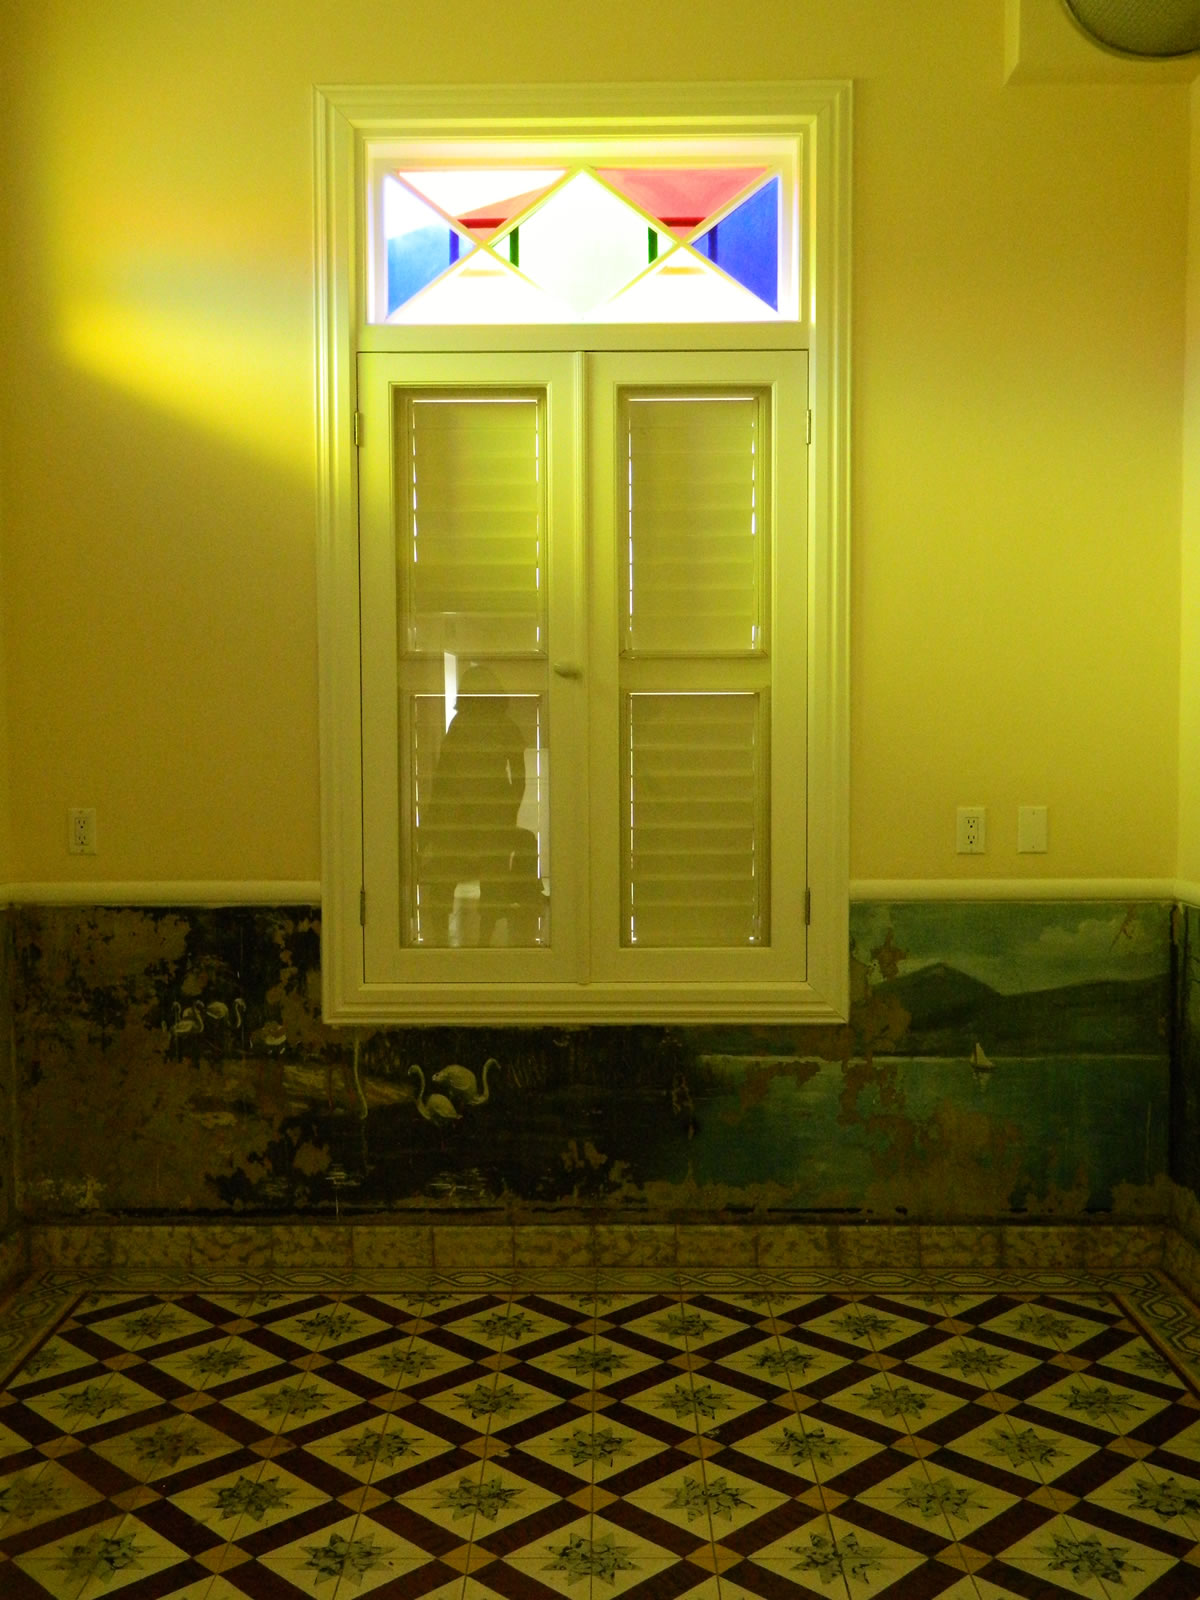 Window at Green 'Ecury' House | Archeological Museum Schelpstraat 42, Oranjestad